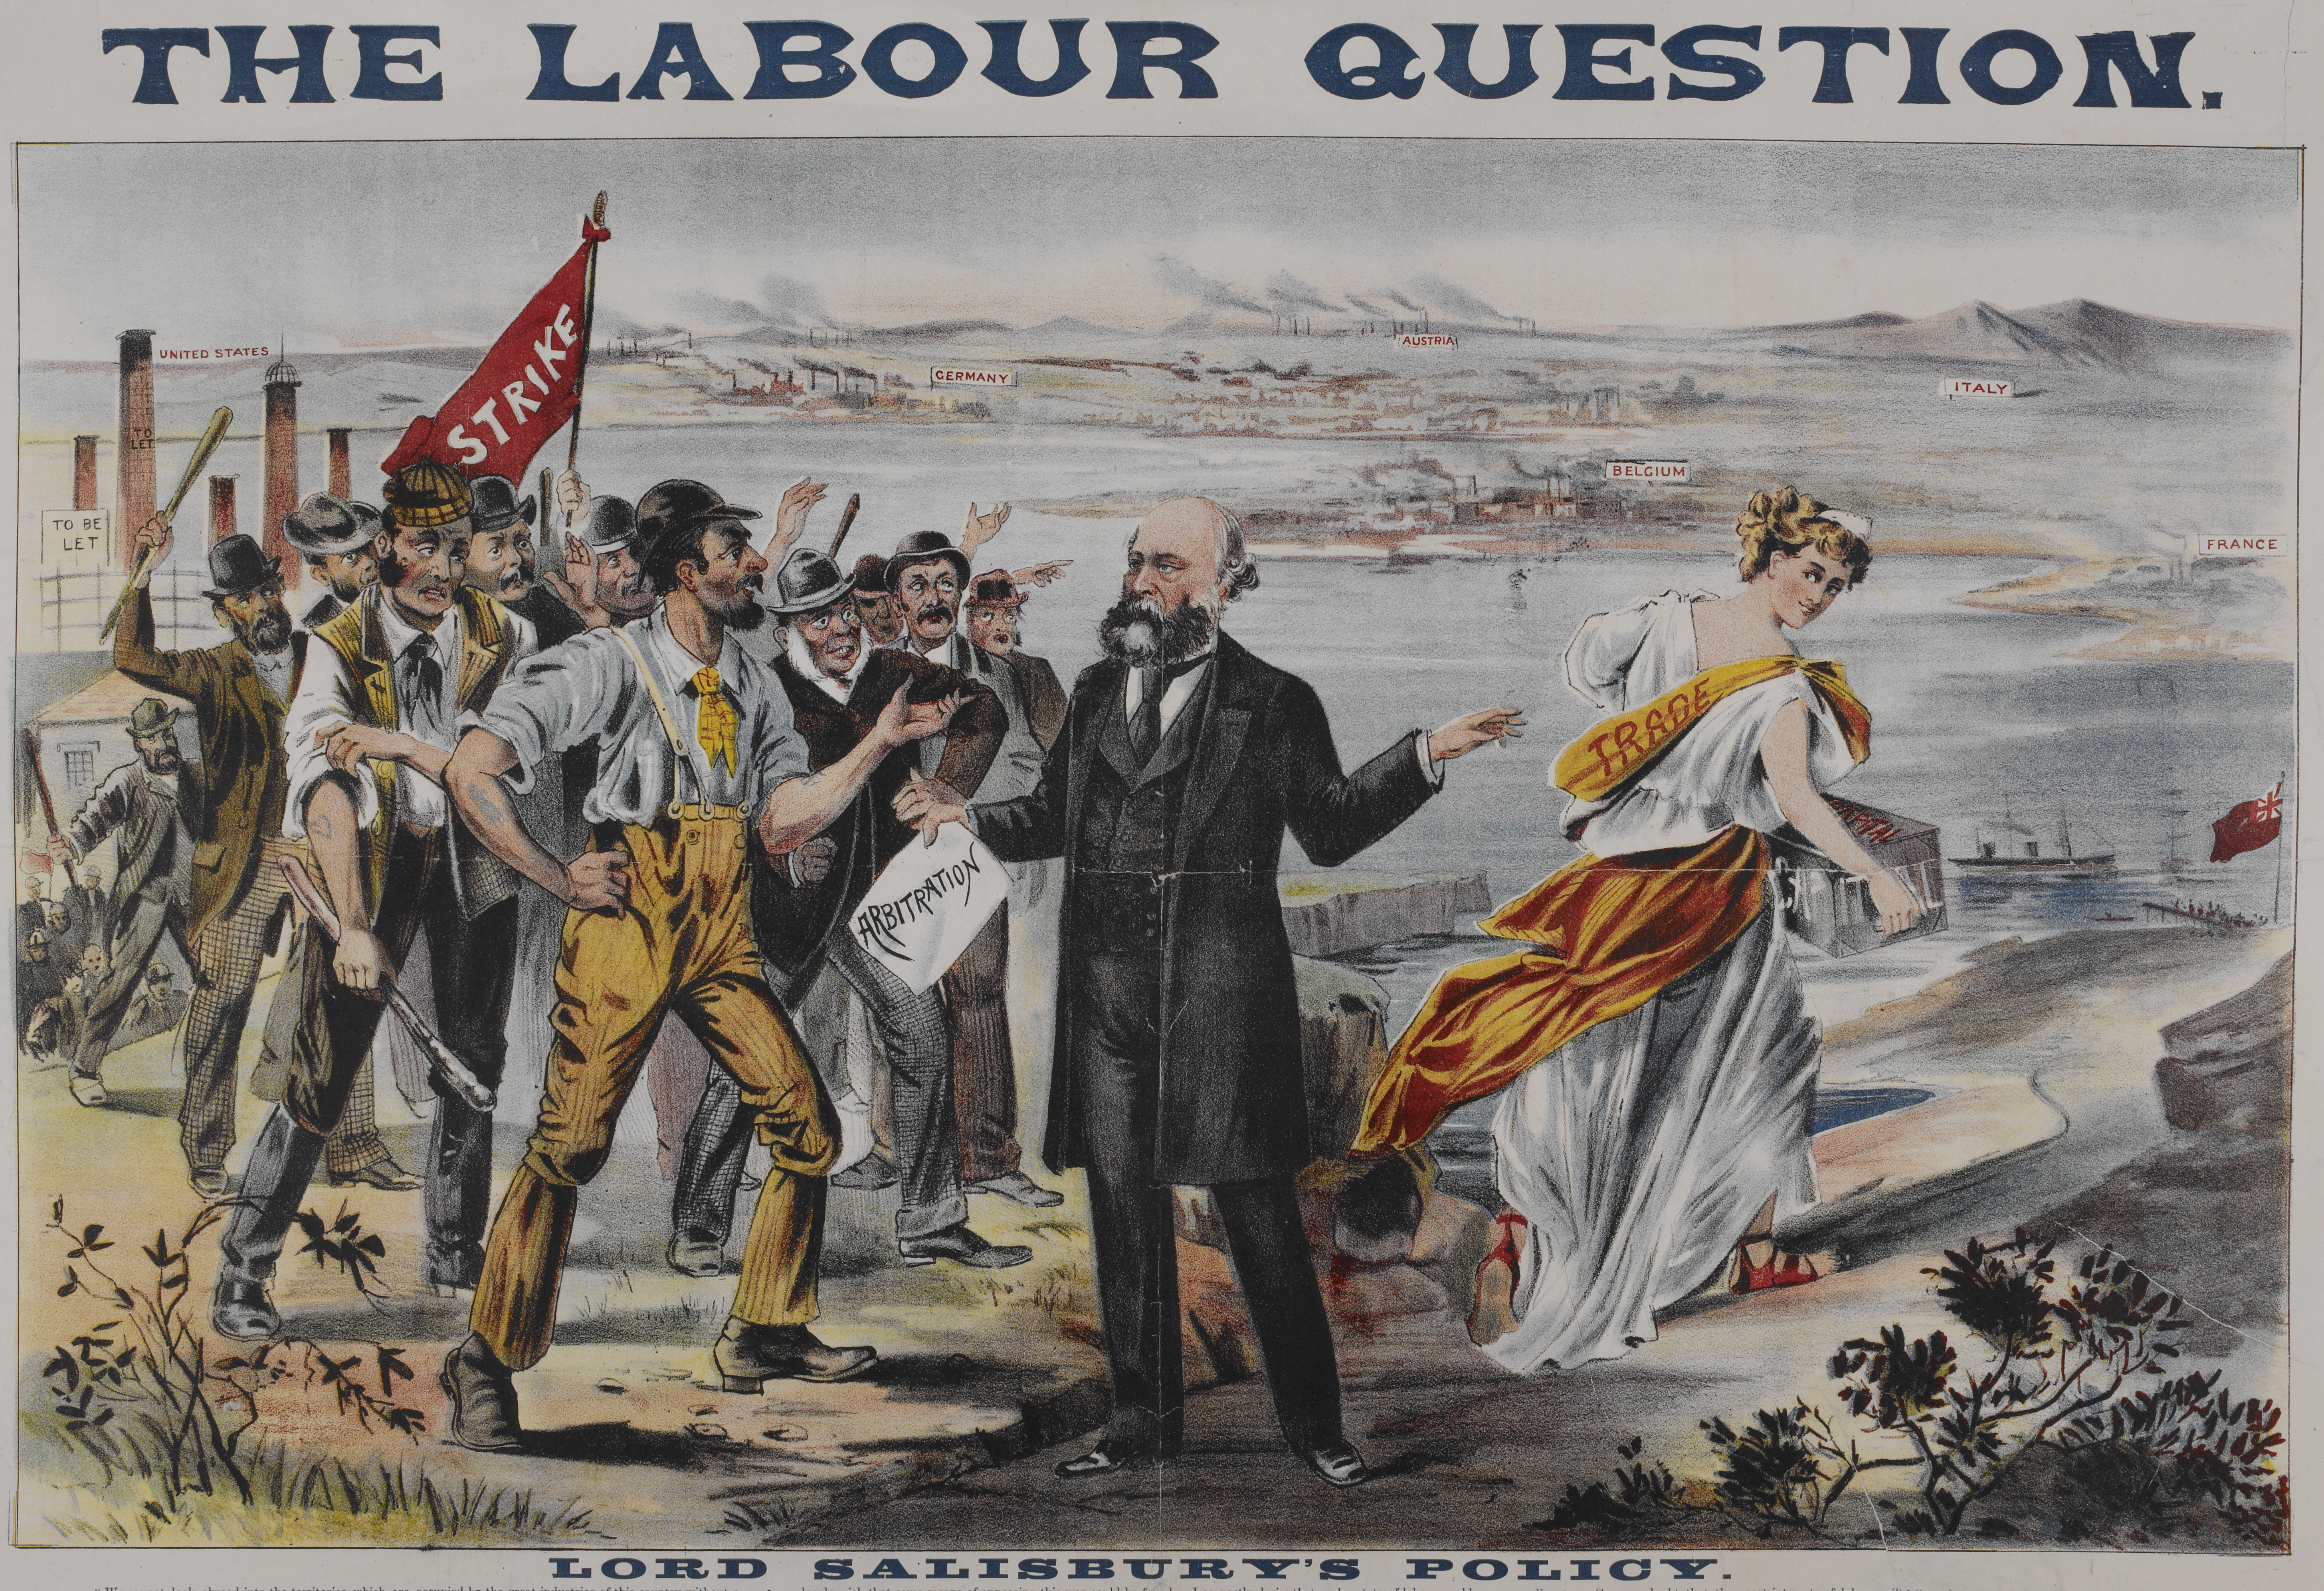 "'The labour question'. 'Lord Salisbury's policy'. ""We cannot look abroad into the territories ... On this matter I can only say that I believe the Government may give useful assistance ... when it finds that men are willing to co-operate with them."" Lord Salisbury is shown holding a piece of paper titled 'Arbitration'. To his left are workers on strike and to his right a female figure with 'trade' written on her walks to the sea. In the distance and across the sea are the named countries, German.,57 x 90 cm."